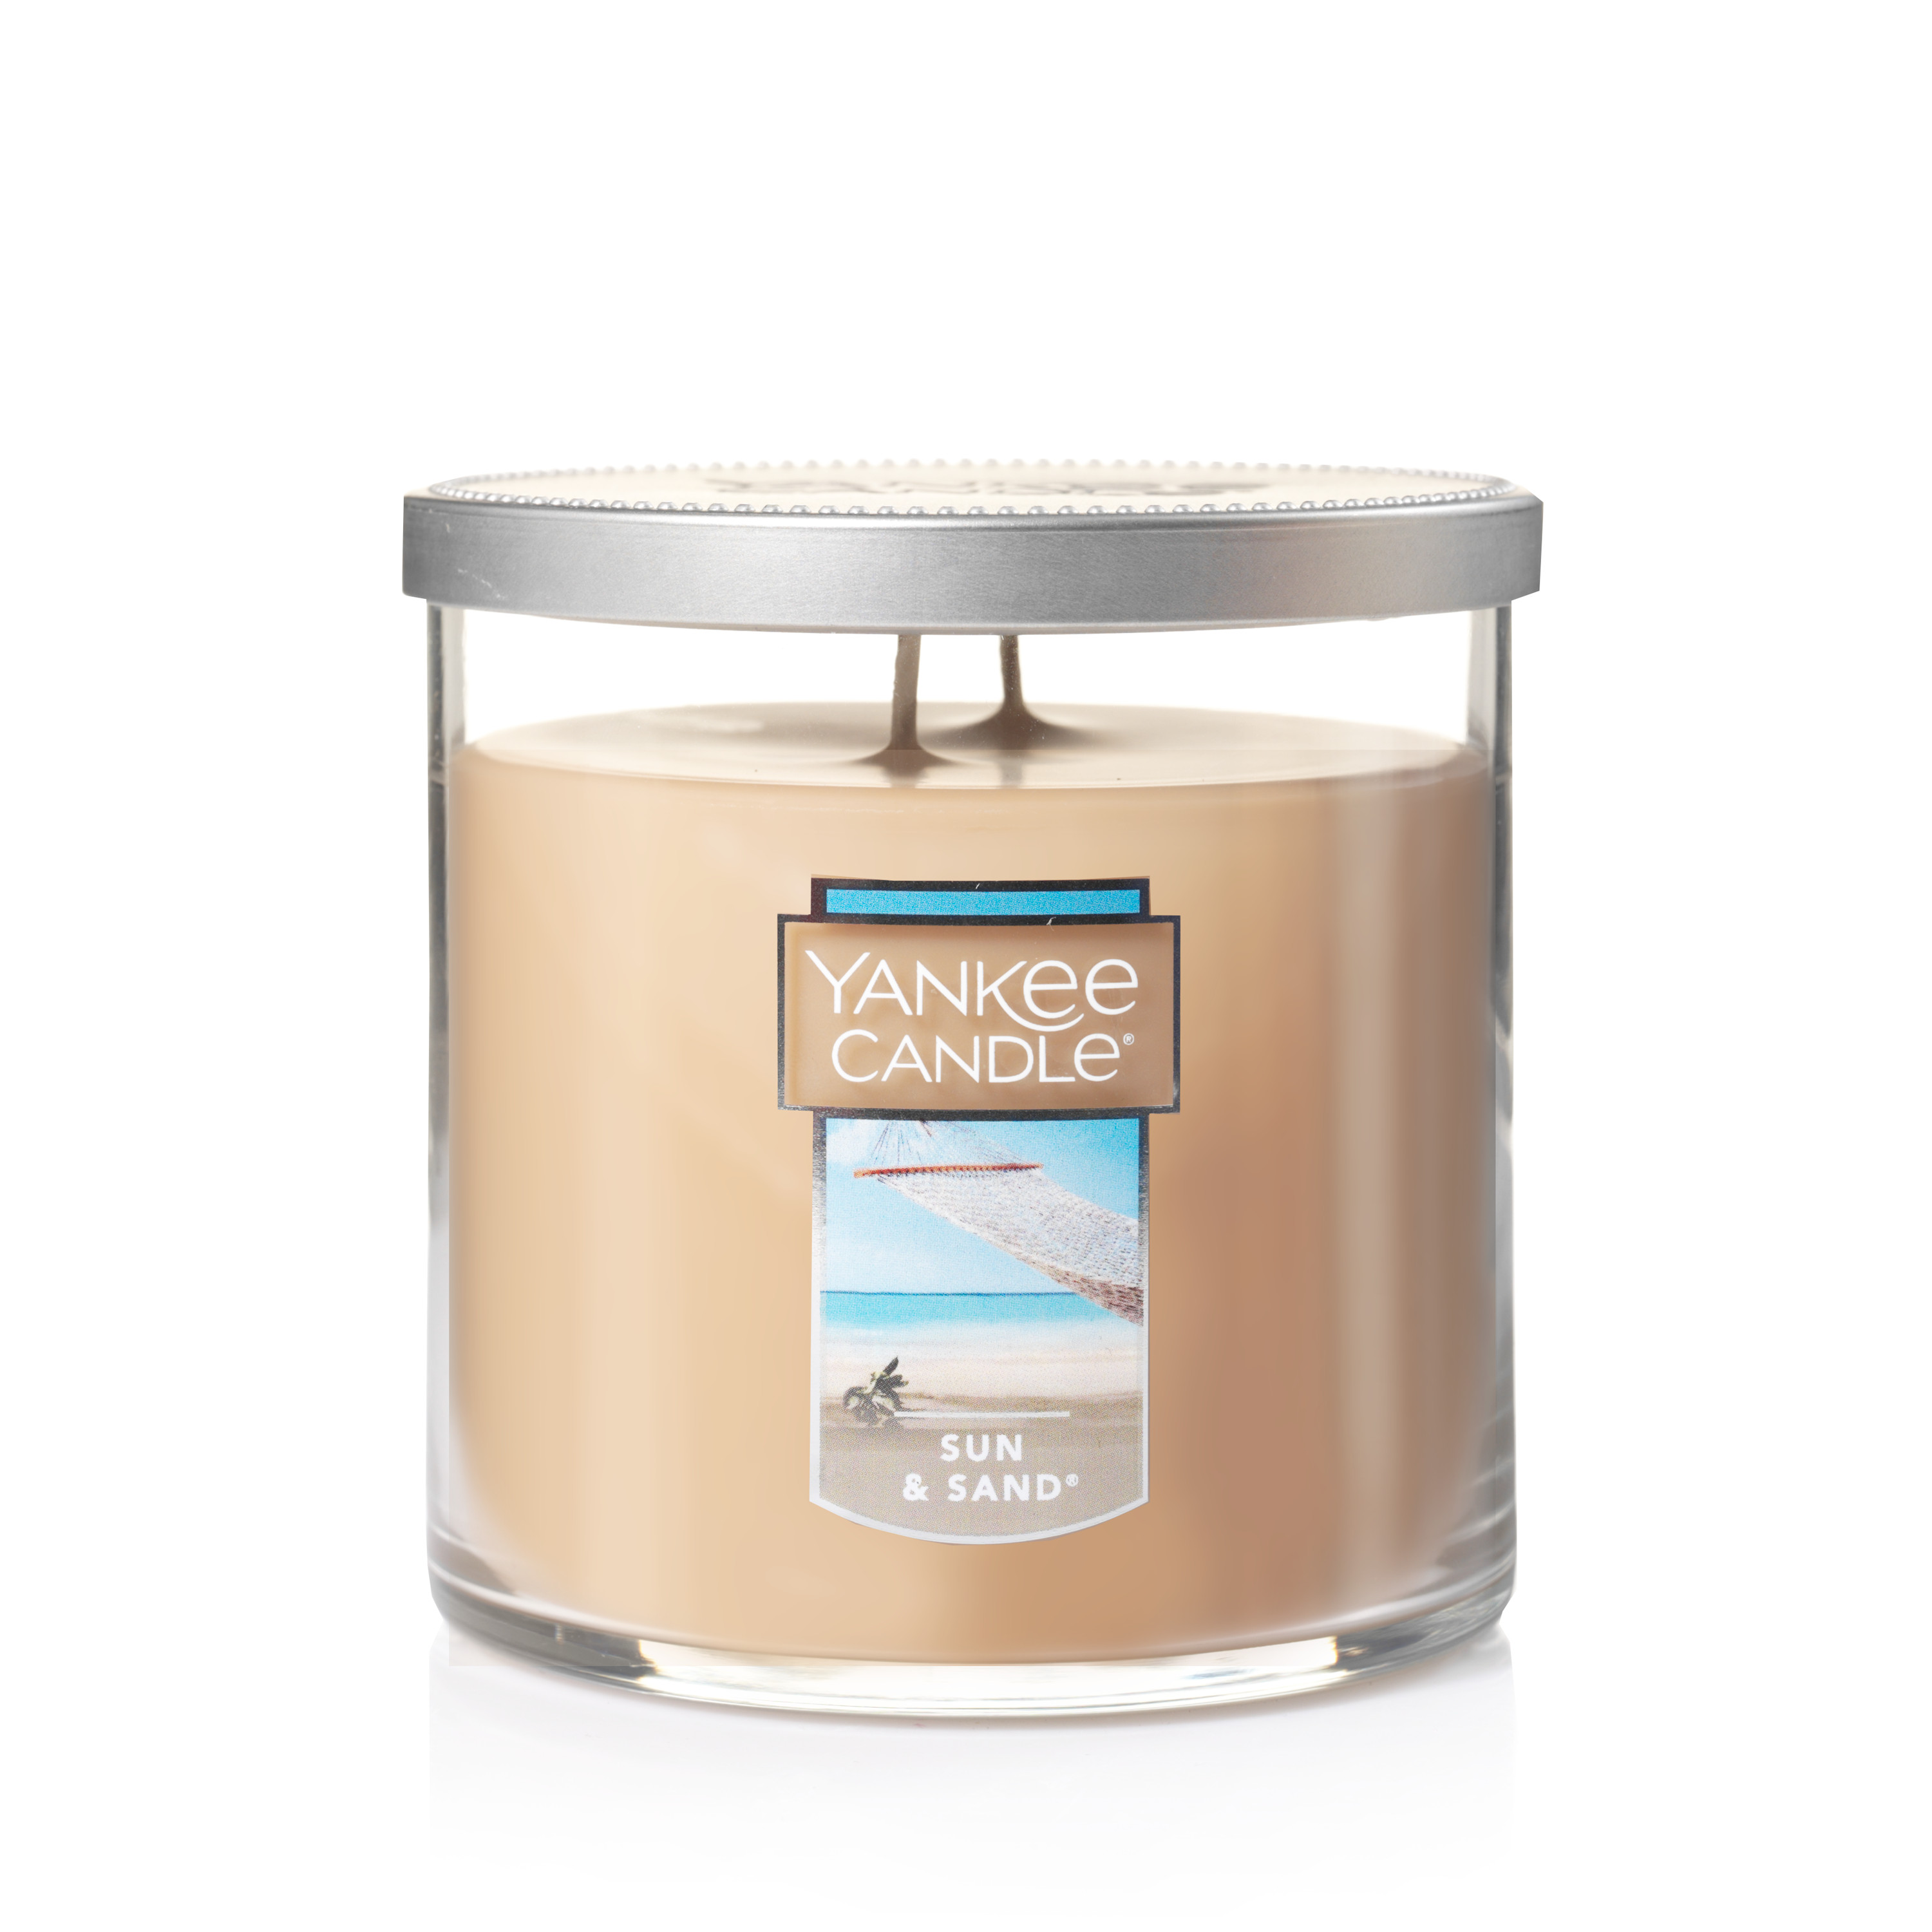 Yankee Candle Medium 2-Wick Tumbler Candle, Sun & Sand by Yankee Candle